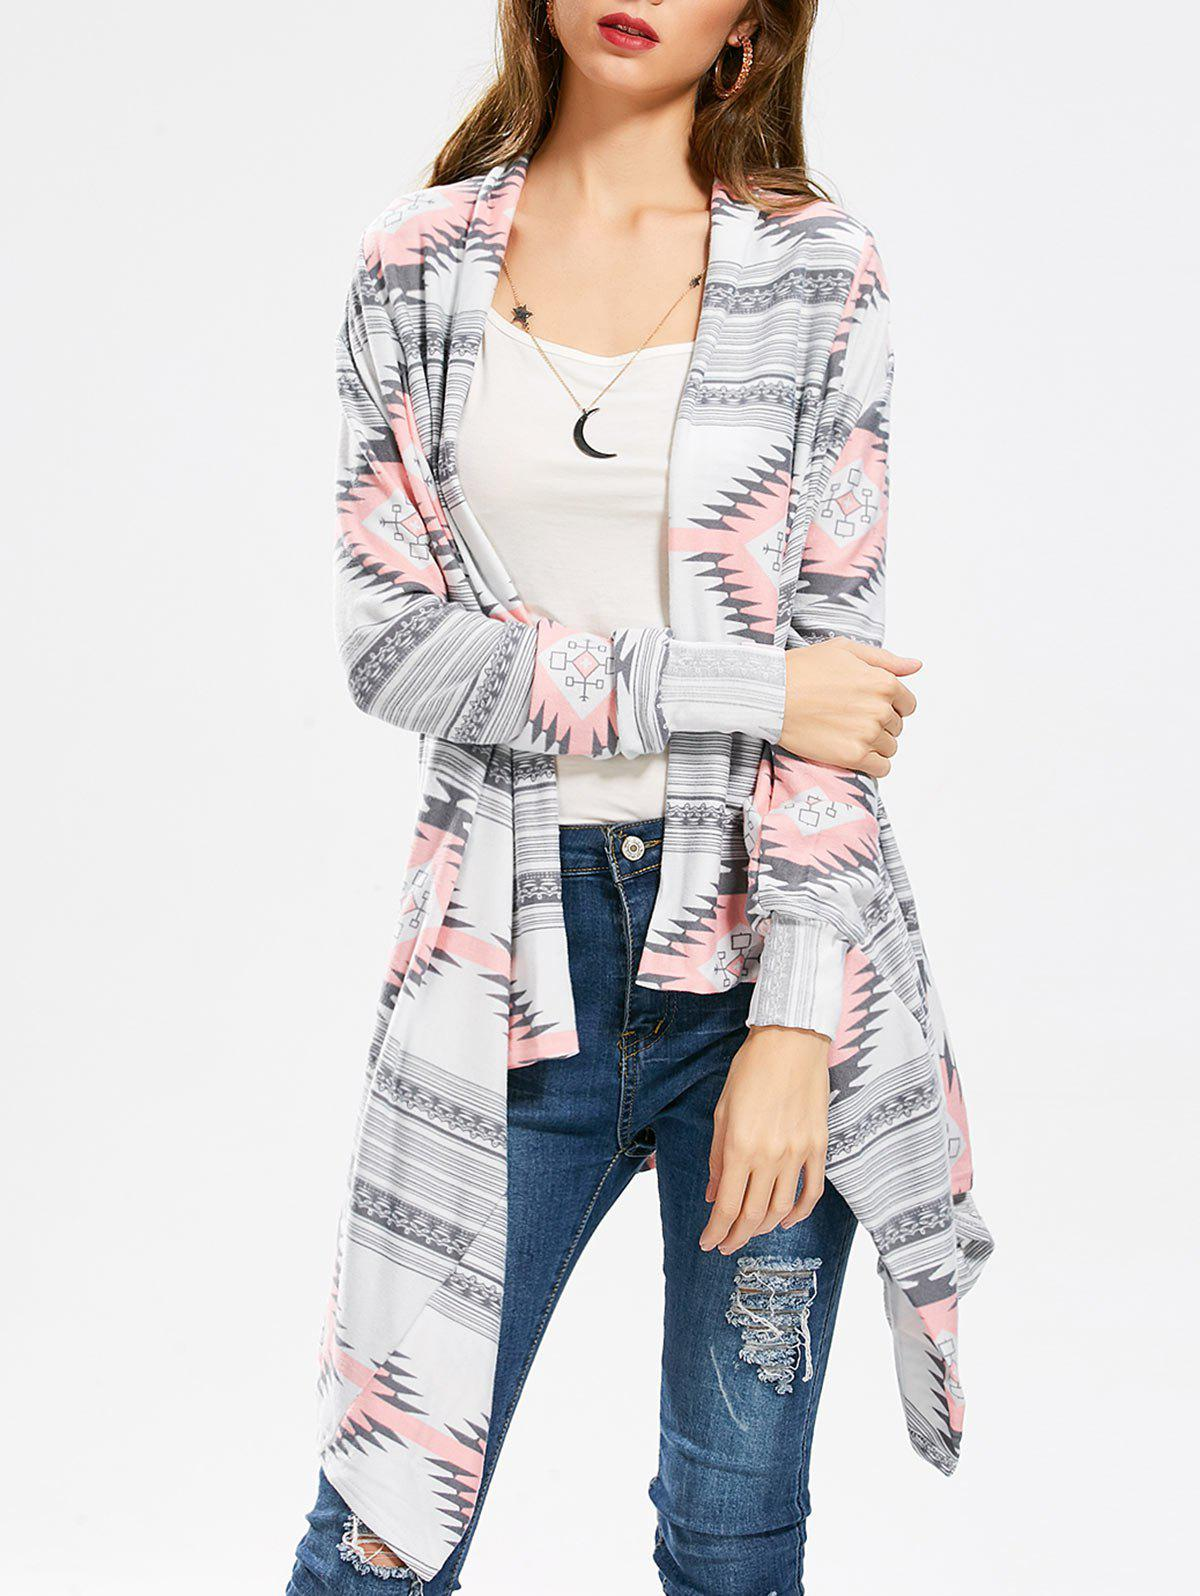 Casual Geometric Printed Long Sleeve Asymmetric Cardigan For WomenWOMEN<br><br>Size: M; Color: PINK; Type: Cardigans; Material: Polyester; Sleeve Length: Full; Collar: Collarless; Style: Fashion; Pattern Type: Print; Season: Fall,Spring; Weight: 0.3600kg; Package Contents: 1 x Cardigan;